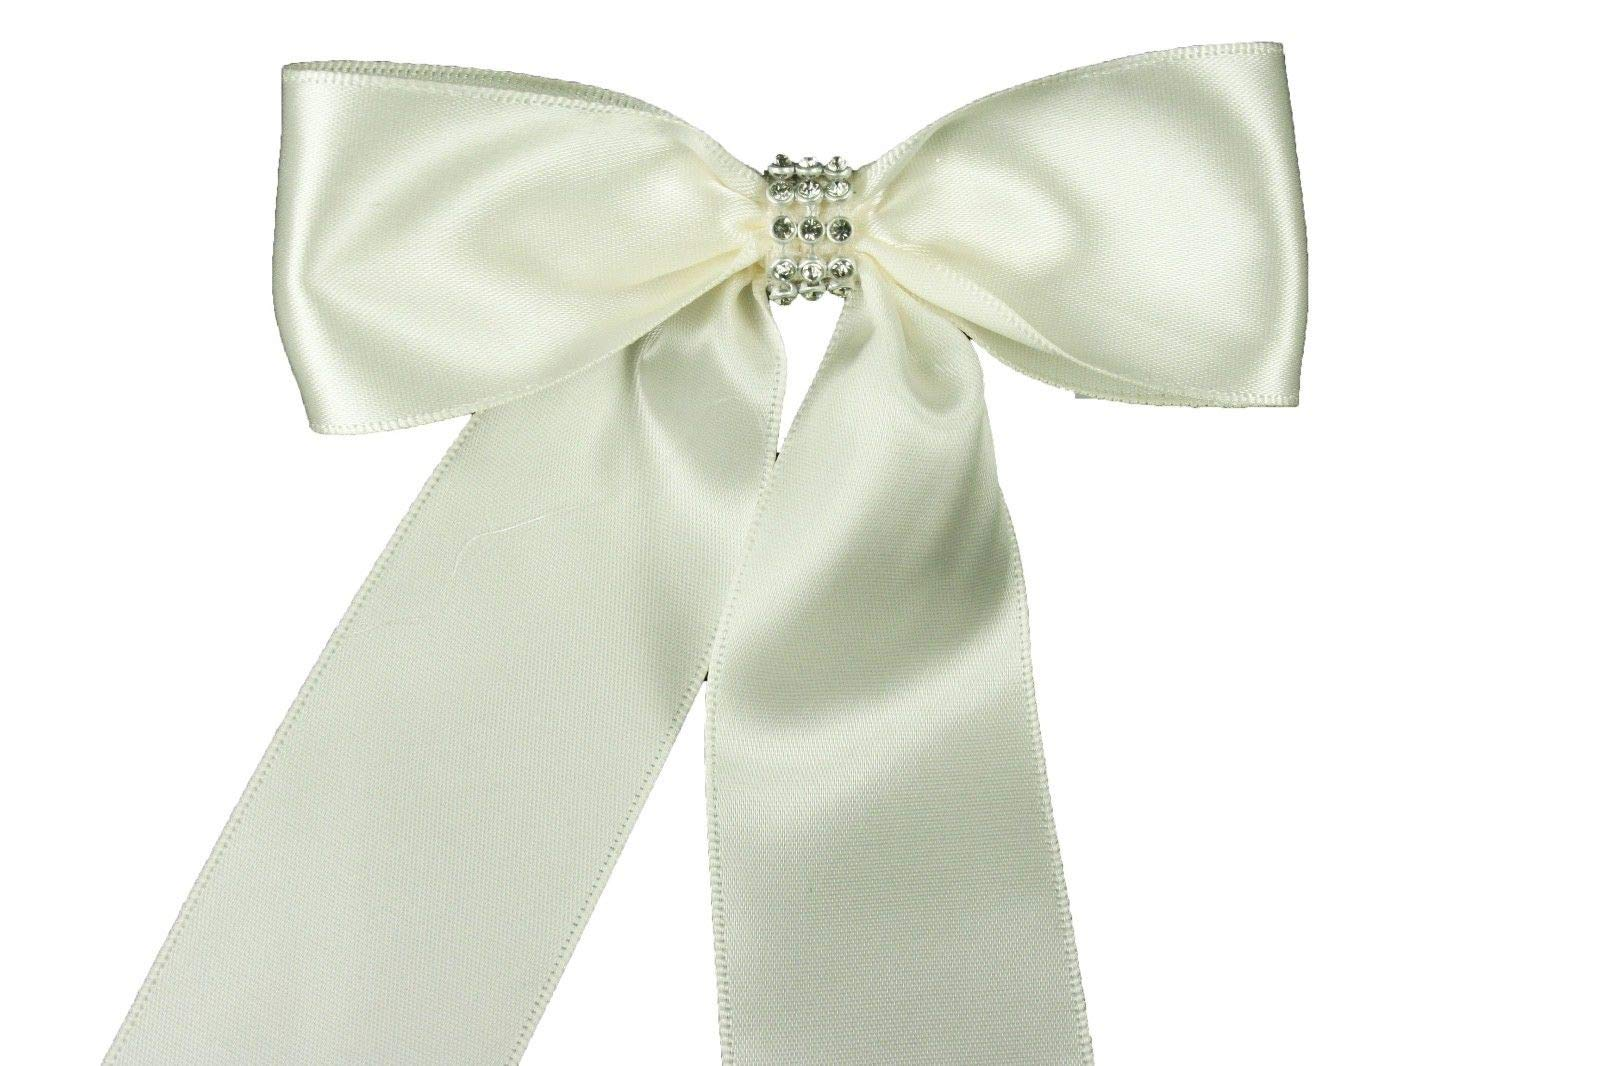 Bright Sun Antique White (Set of 10) Pre-Made 1-1/2'' Satin Bows Rhinestone Center Design with Wire Tie #DPNH